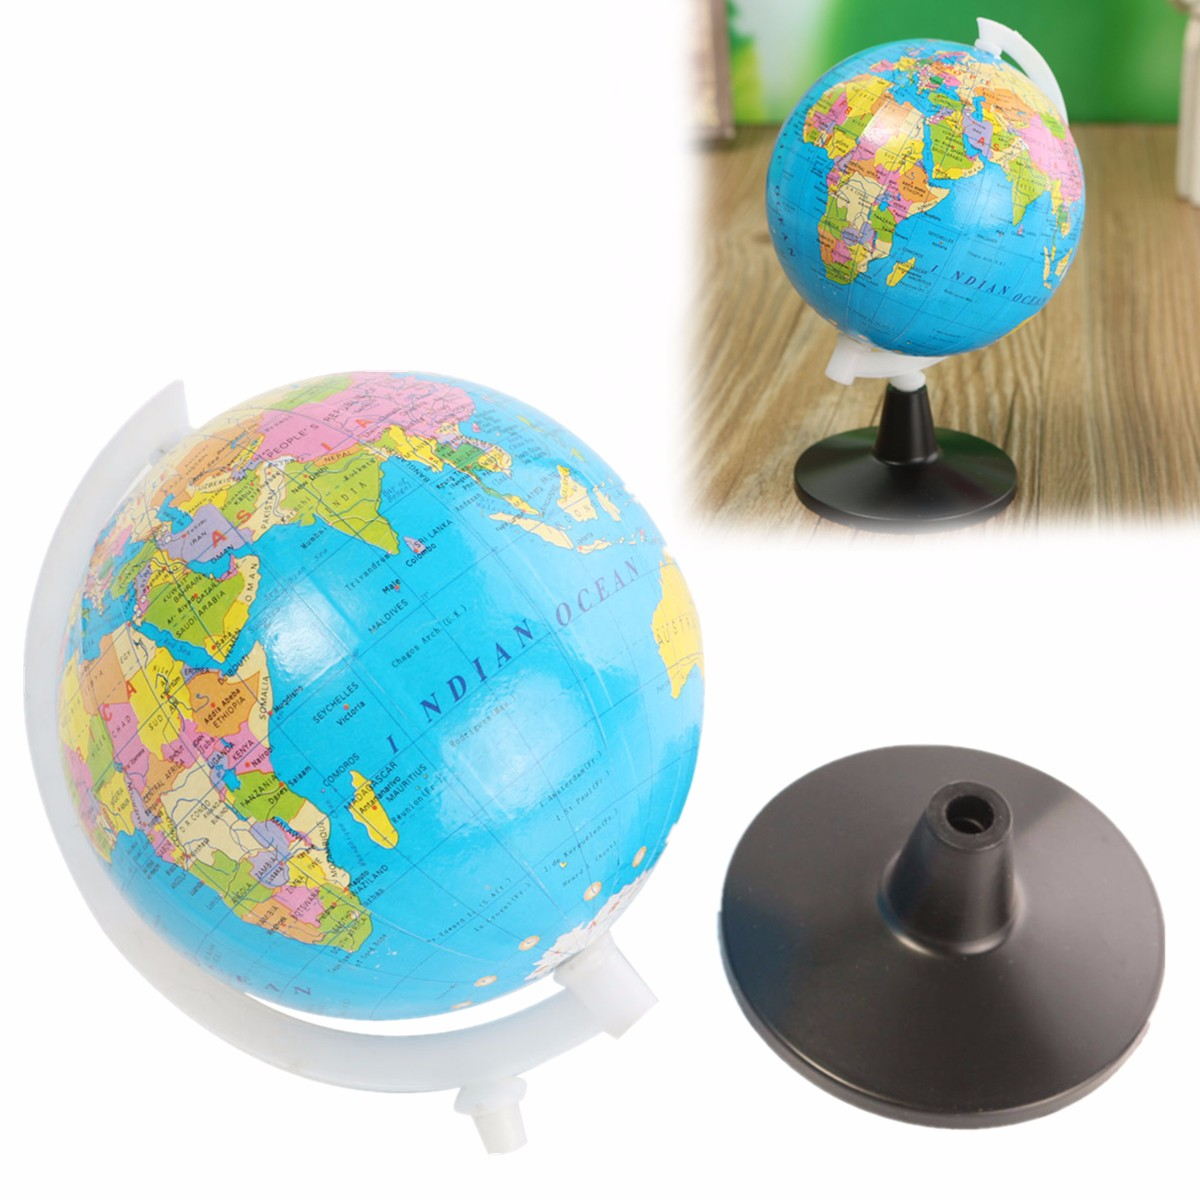 85cm world globe atlas map with swivel stand geography 652c38db 2fcb e740 963c cfcd637034f6g gumiabroncs Image collections